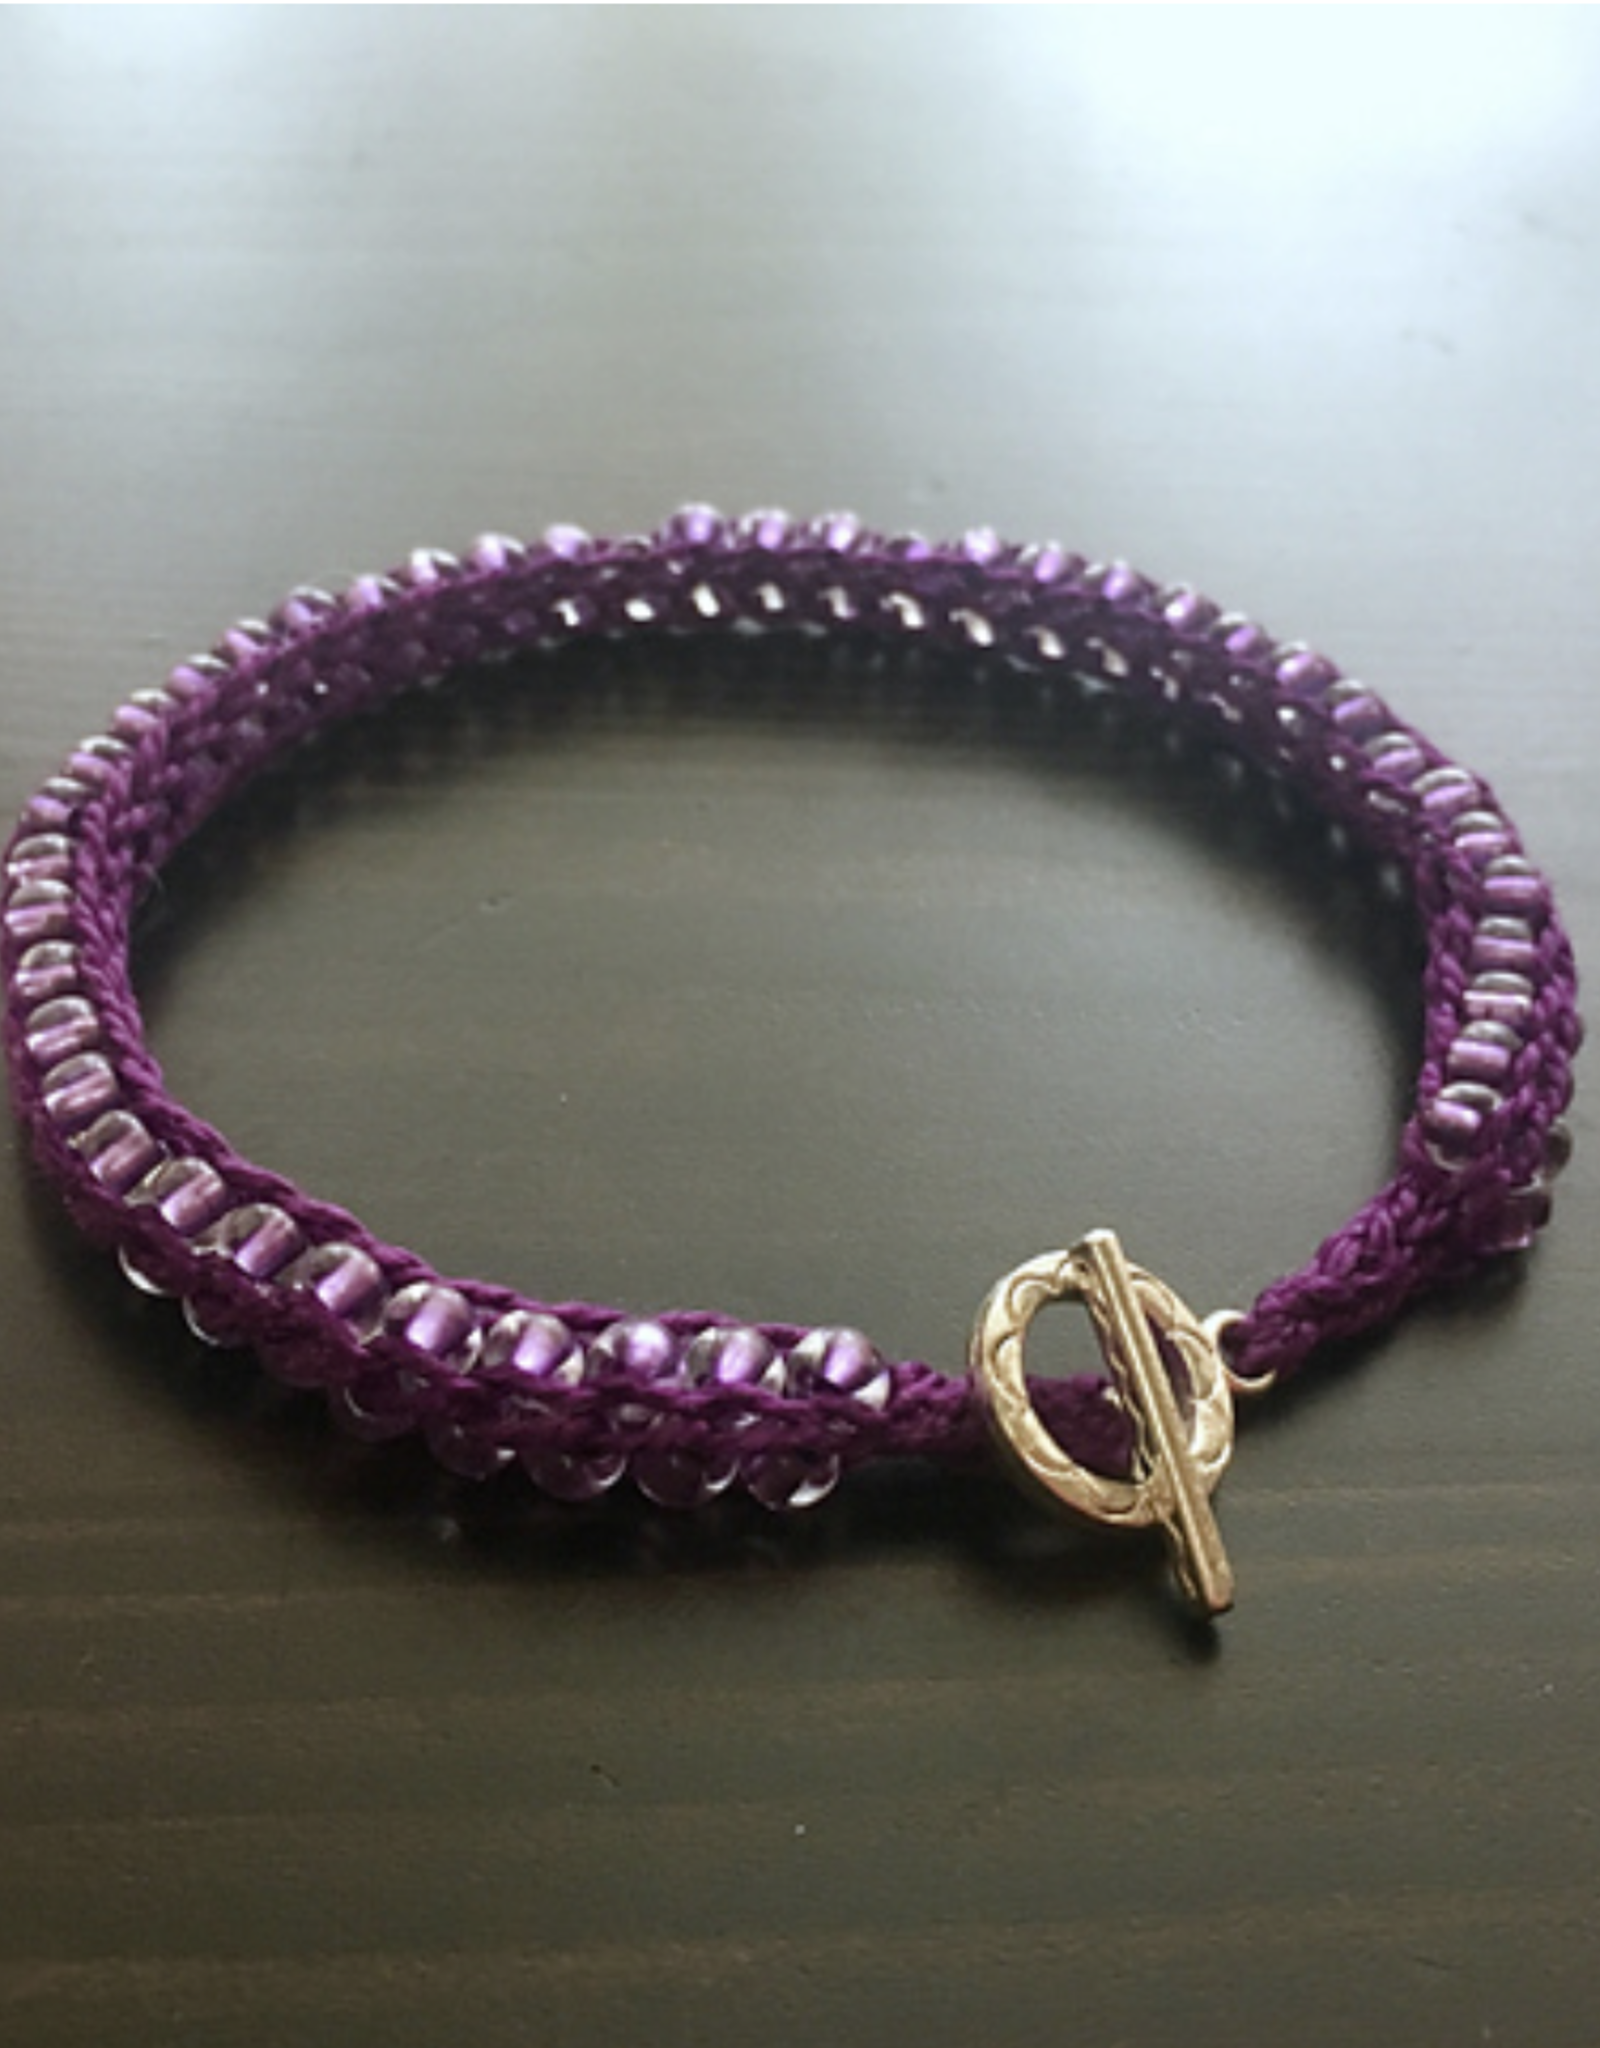 Knitting with Beads: Knit a beaded bracelet - Thursday, June 17th, 5-6:30pm